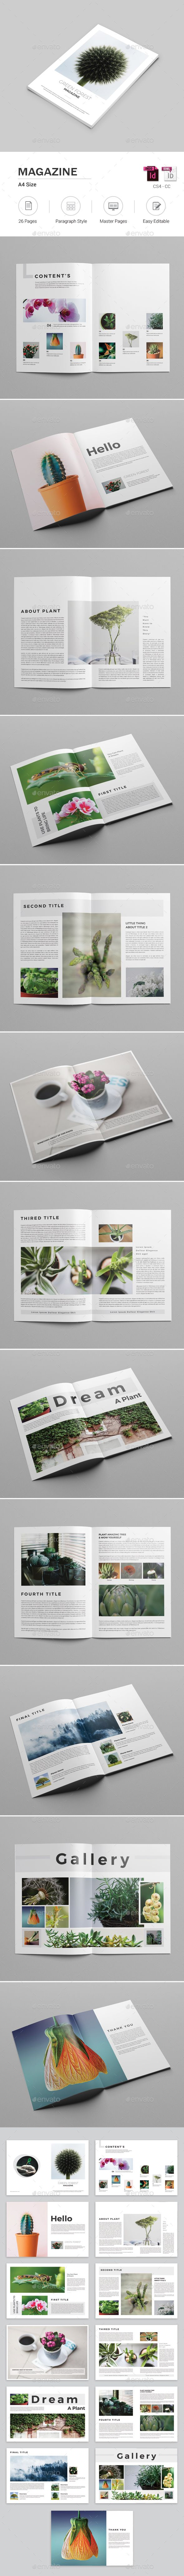 Best 25 indesign magazine templates ideas on pinterest magazine magazine indesign magazine templatesmagazine pronofoot35fo Gallery